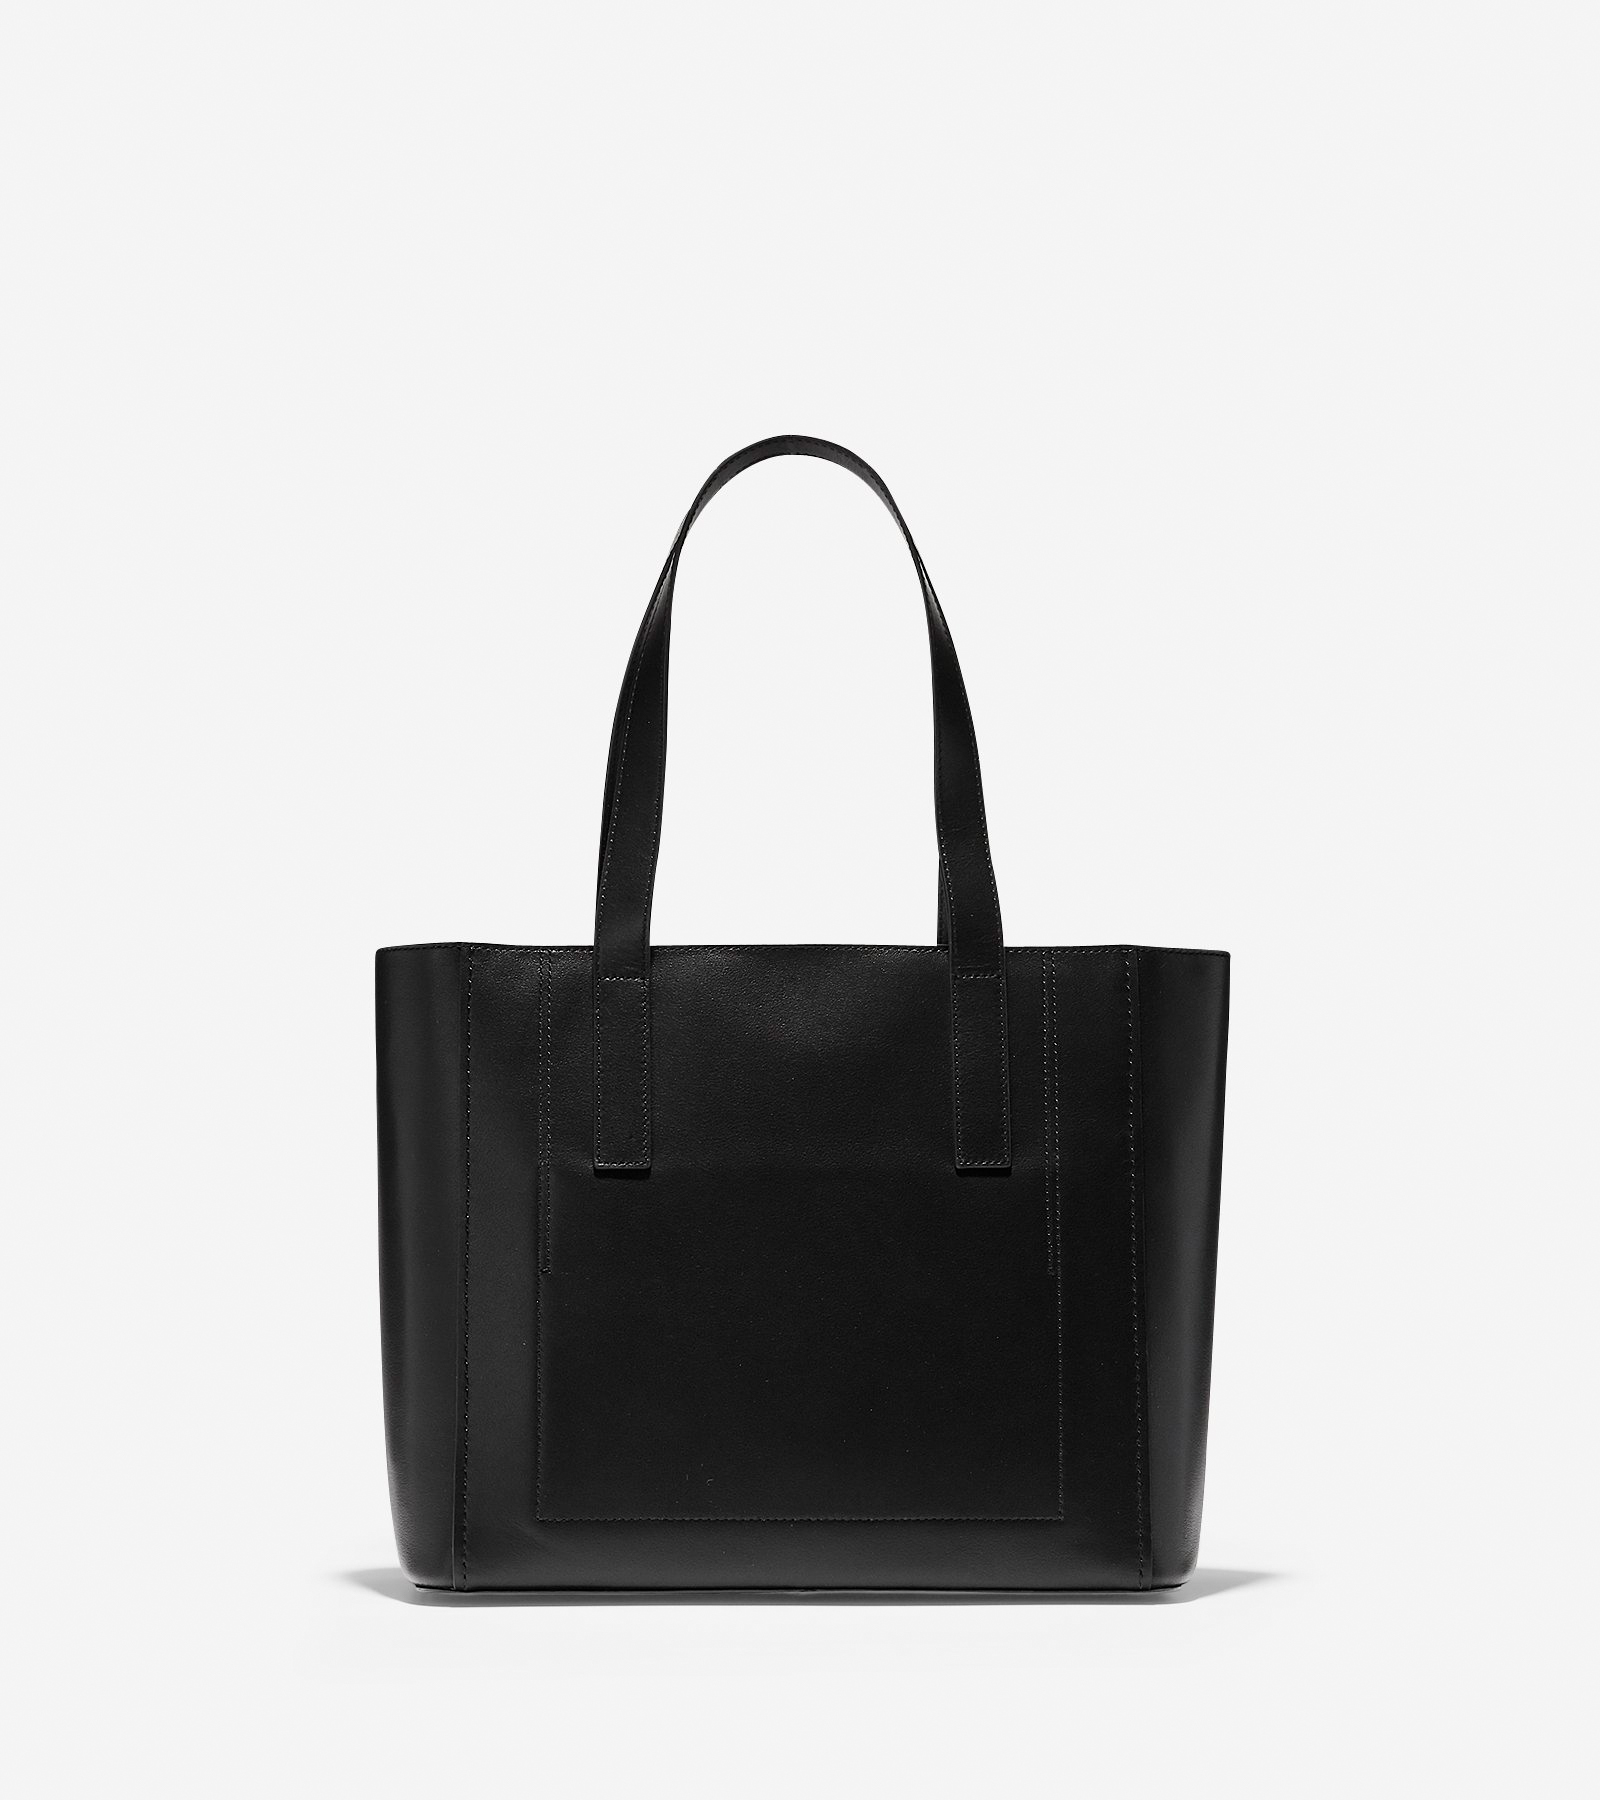 5d6e1837d Women's Grand.ØS Leather Small Tote in Black Leather | Cole Haan US